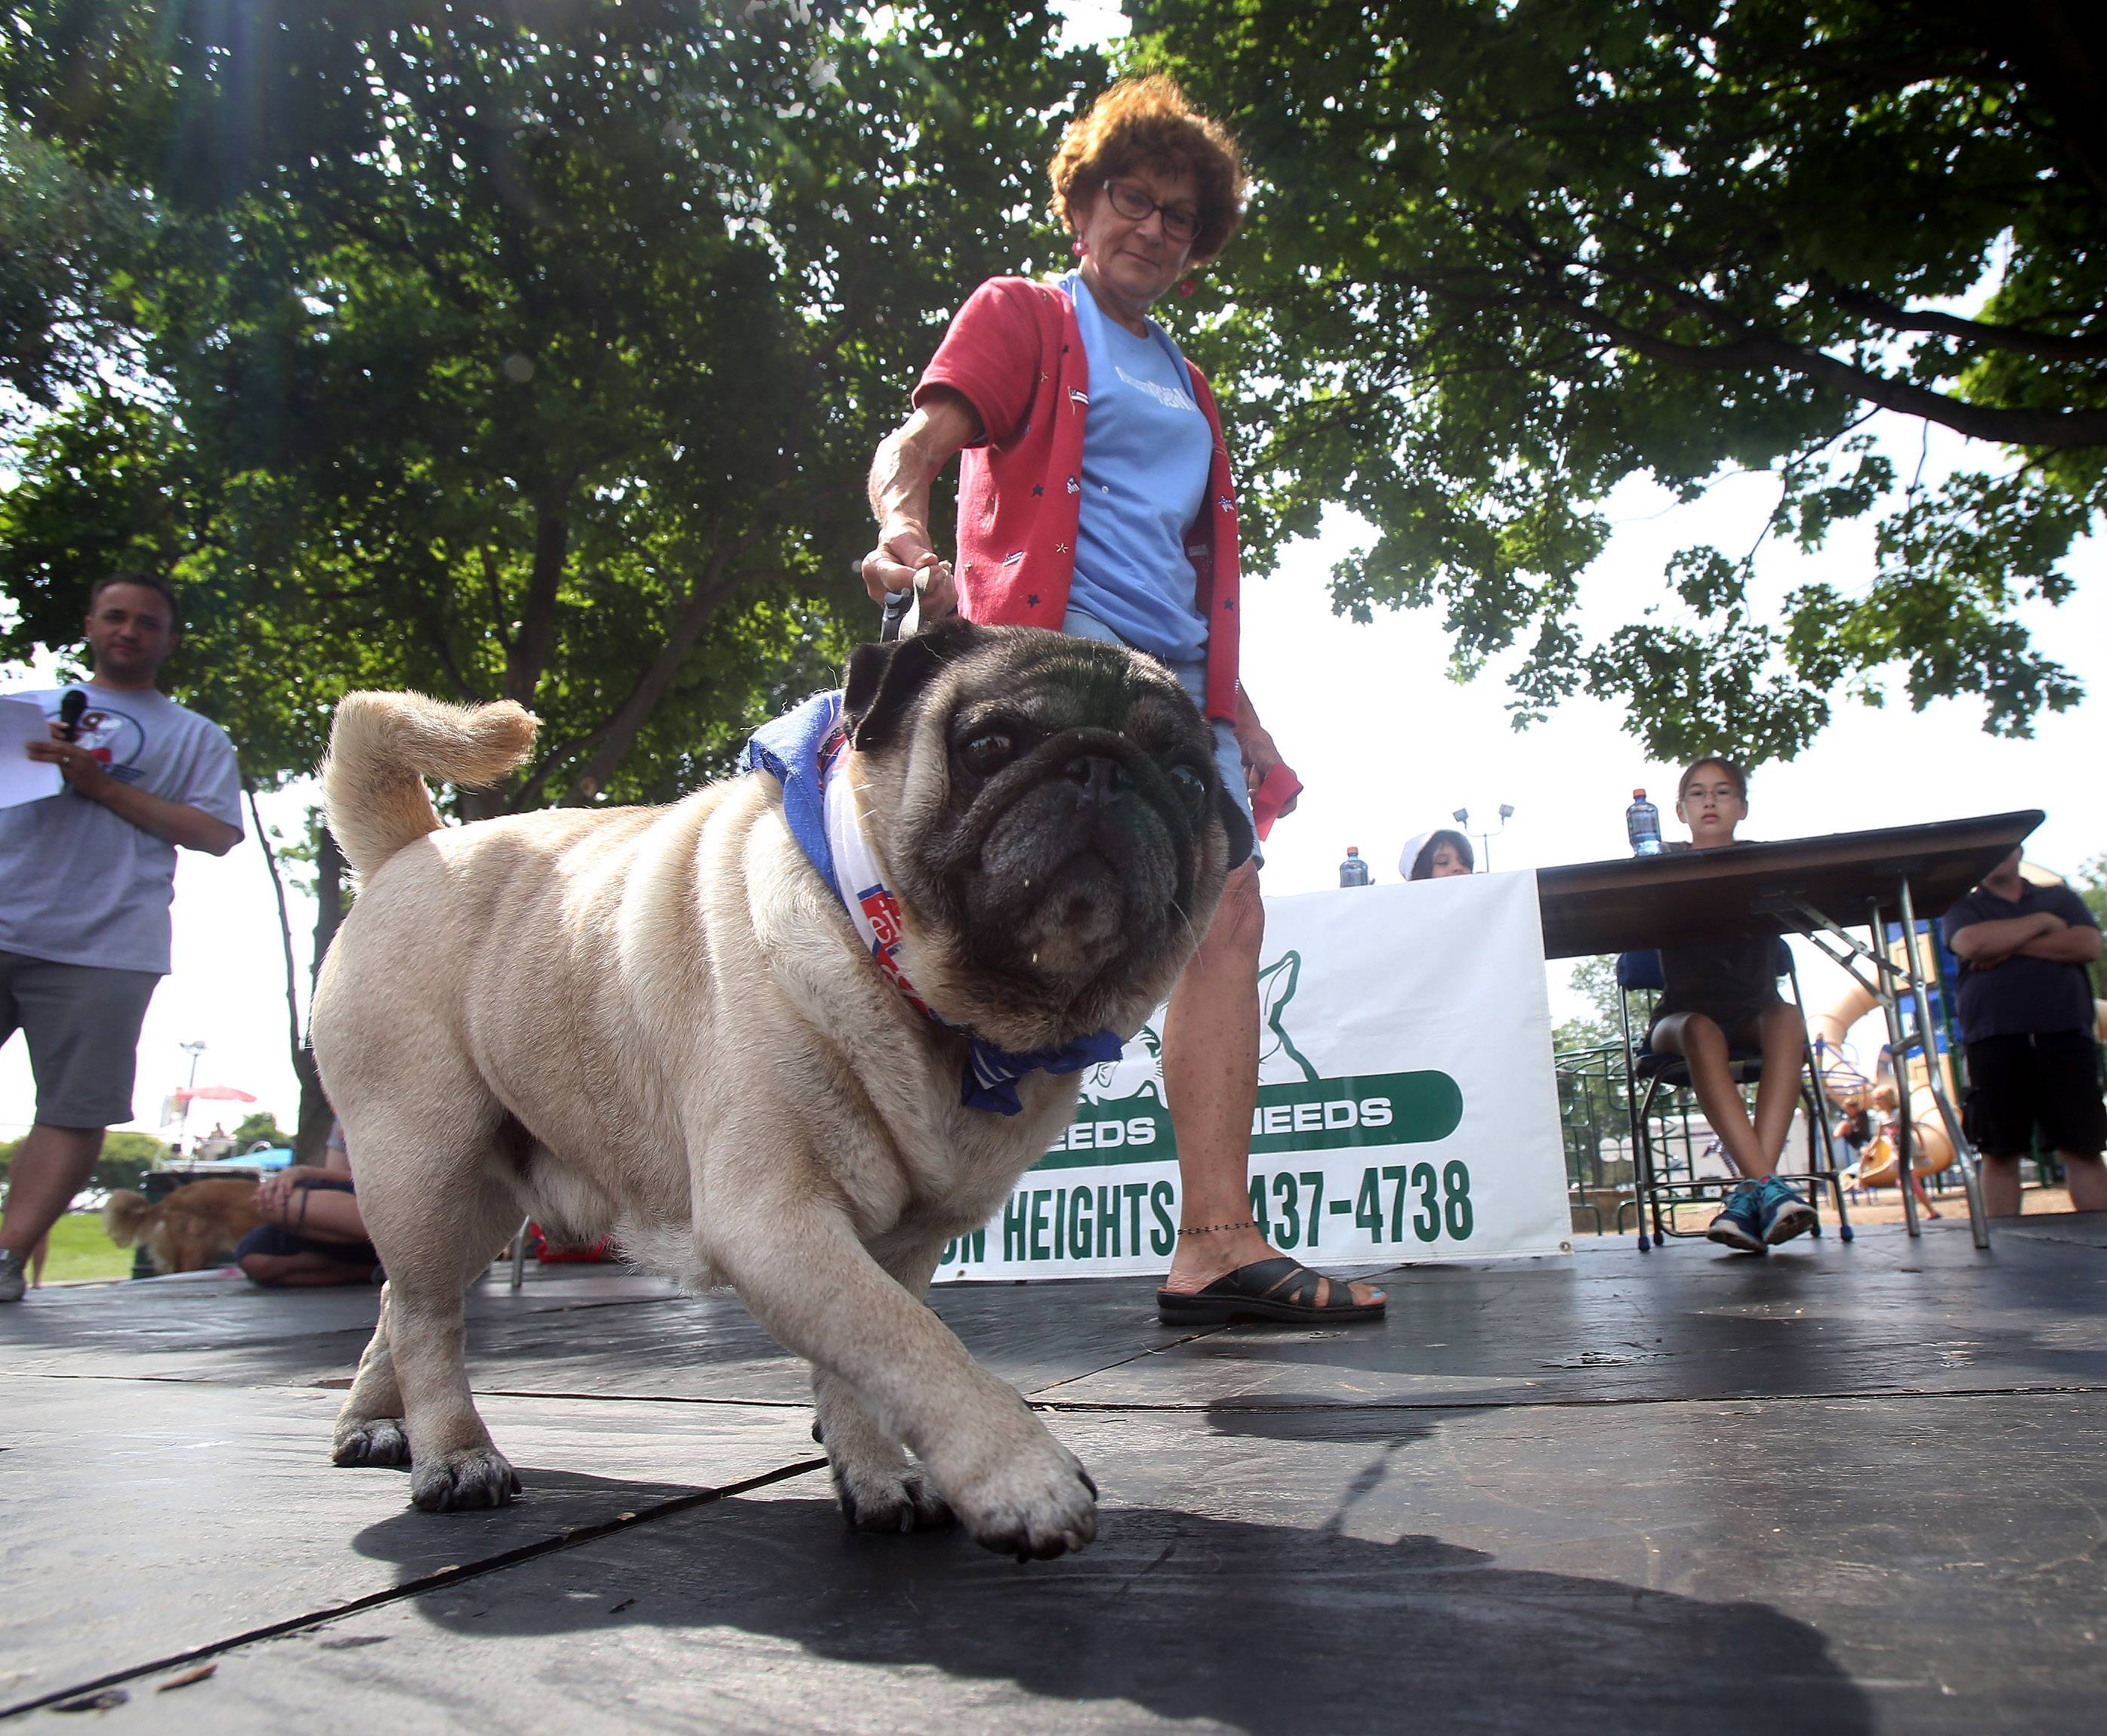 A pug named Clyde walks across the stage with Kacy Worcester of Elmhurst during Sunday's pet parade at Frontier Days in Arlington Heights. The parade, which featured pets and their owners competed for best costume, best trick, cutest pet, most unusual and looks most like its owner awards, was among the highlights of the annual fests's last day.